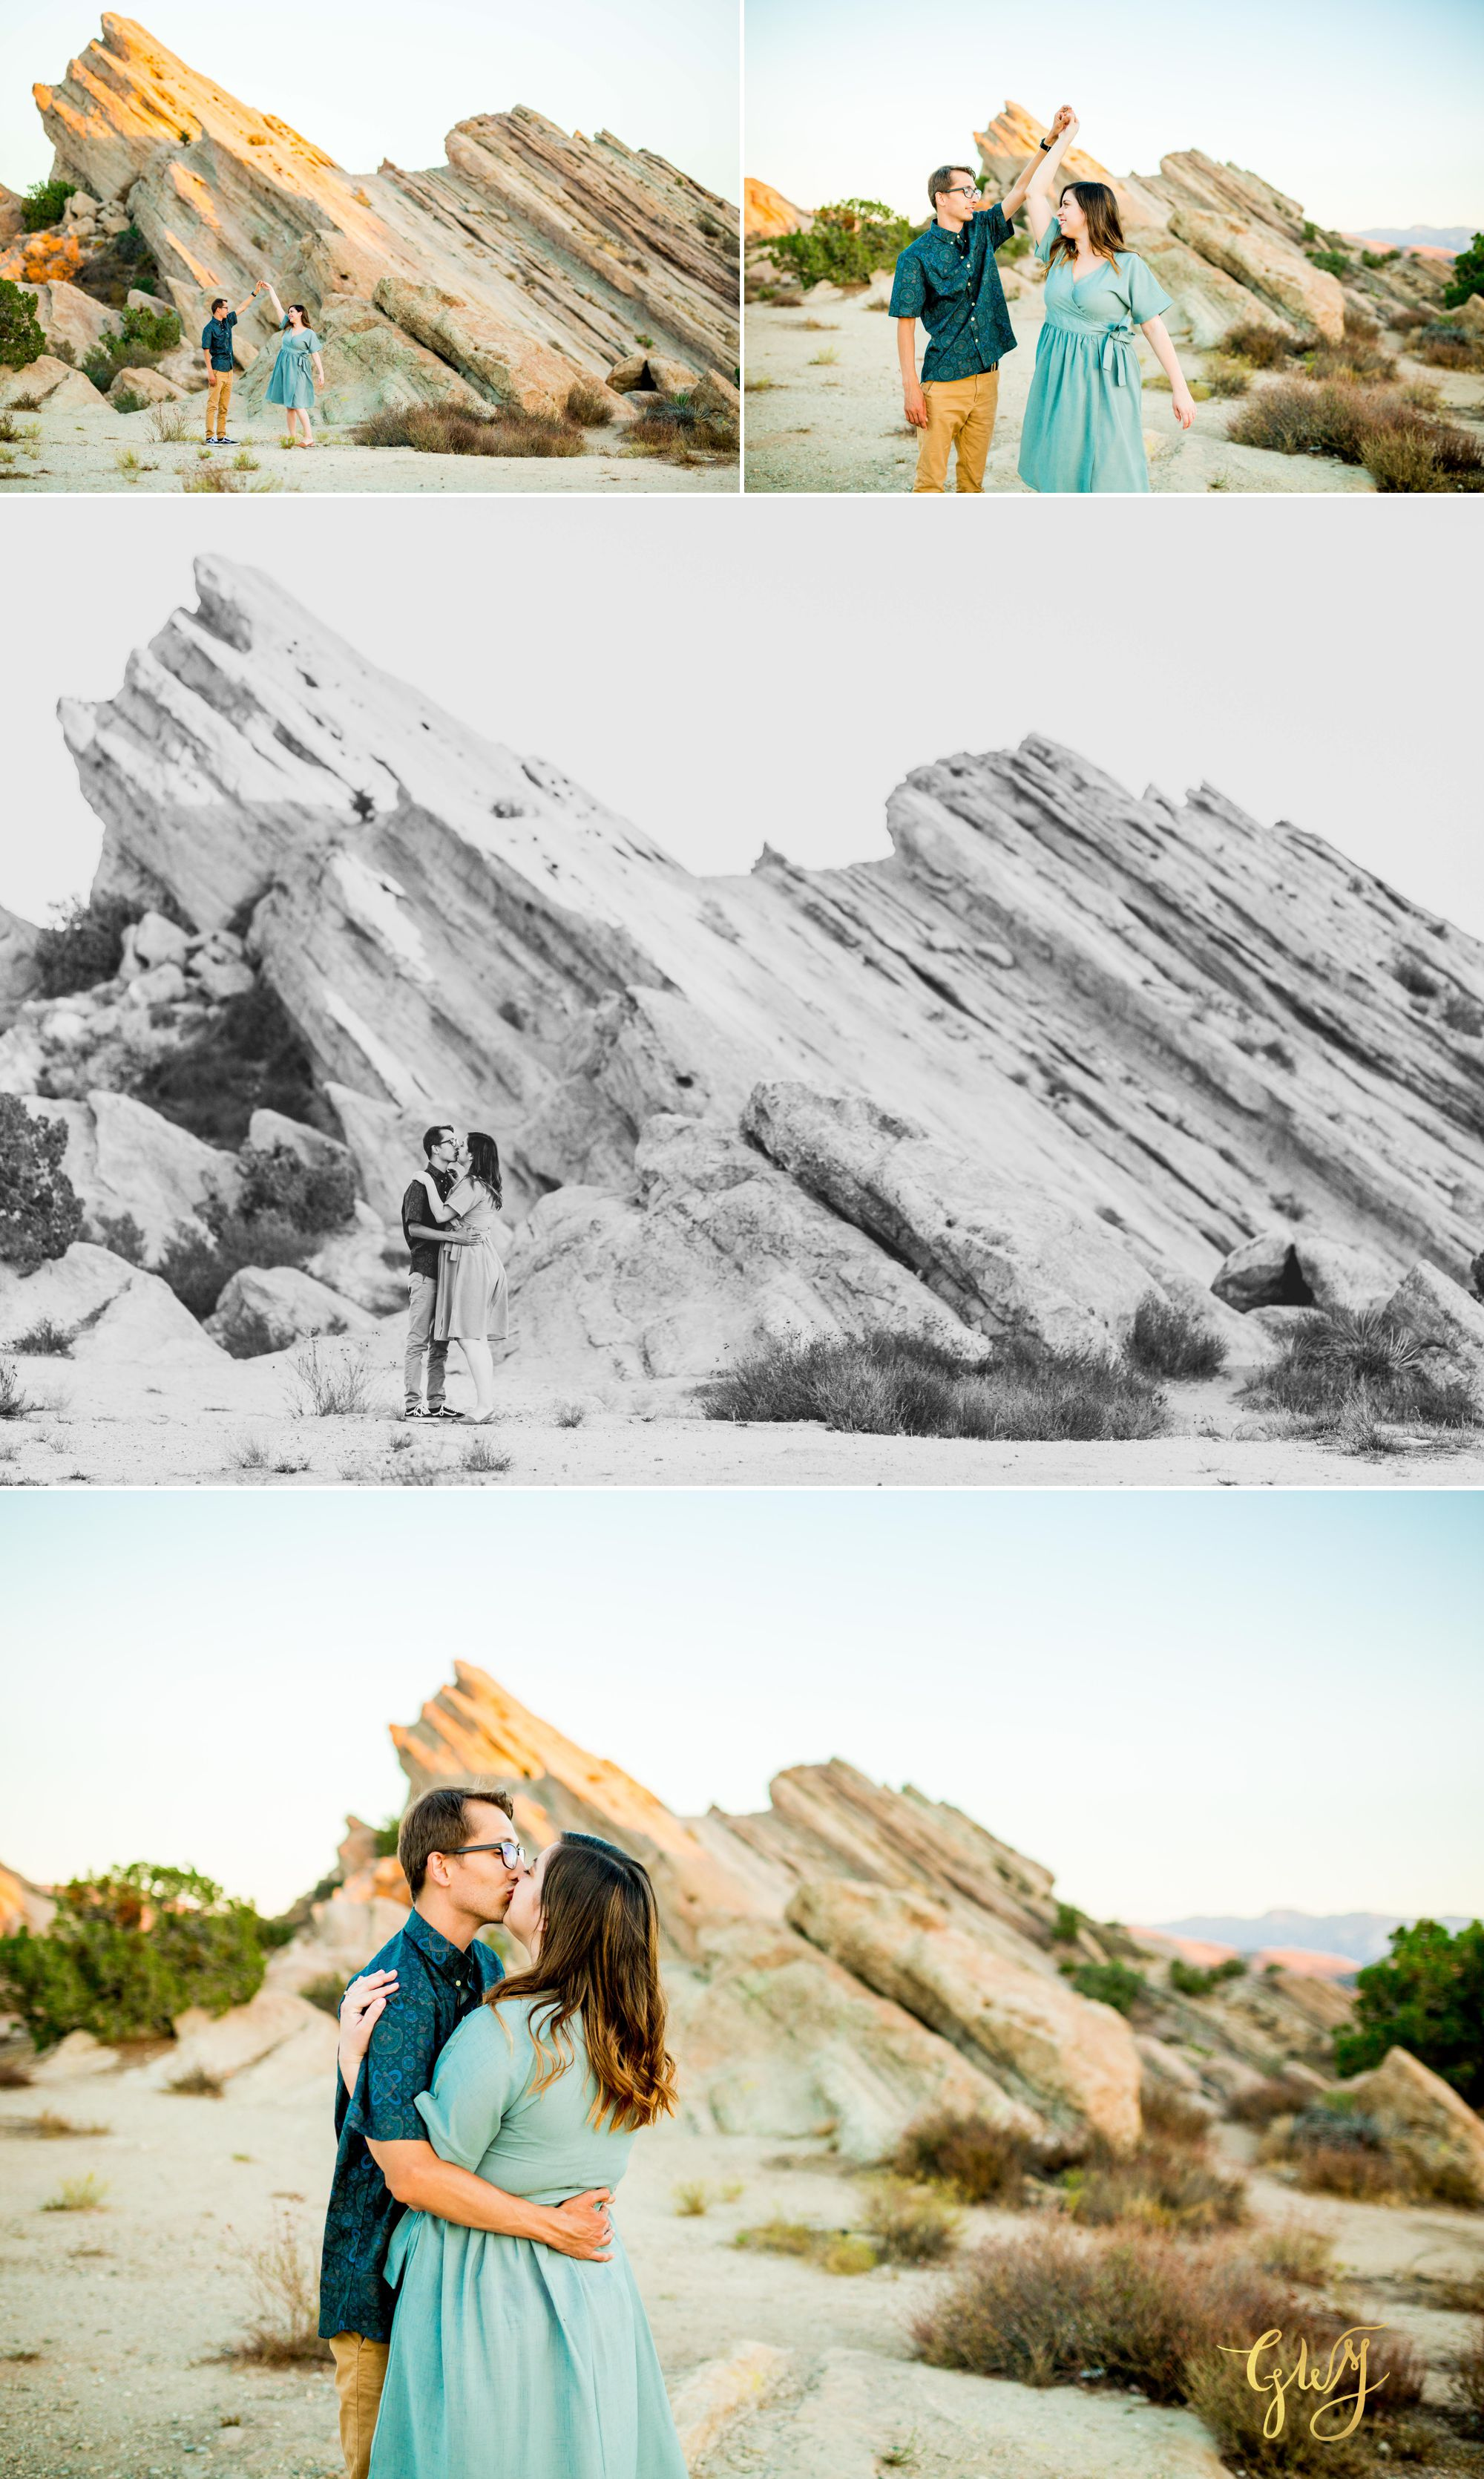 KJ + Maddie Vasquez Rocks Adventurous Hiking Outdoors Engagement Session by Glass Woods Media 10.jpg